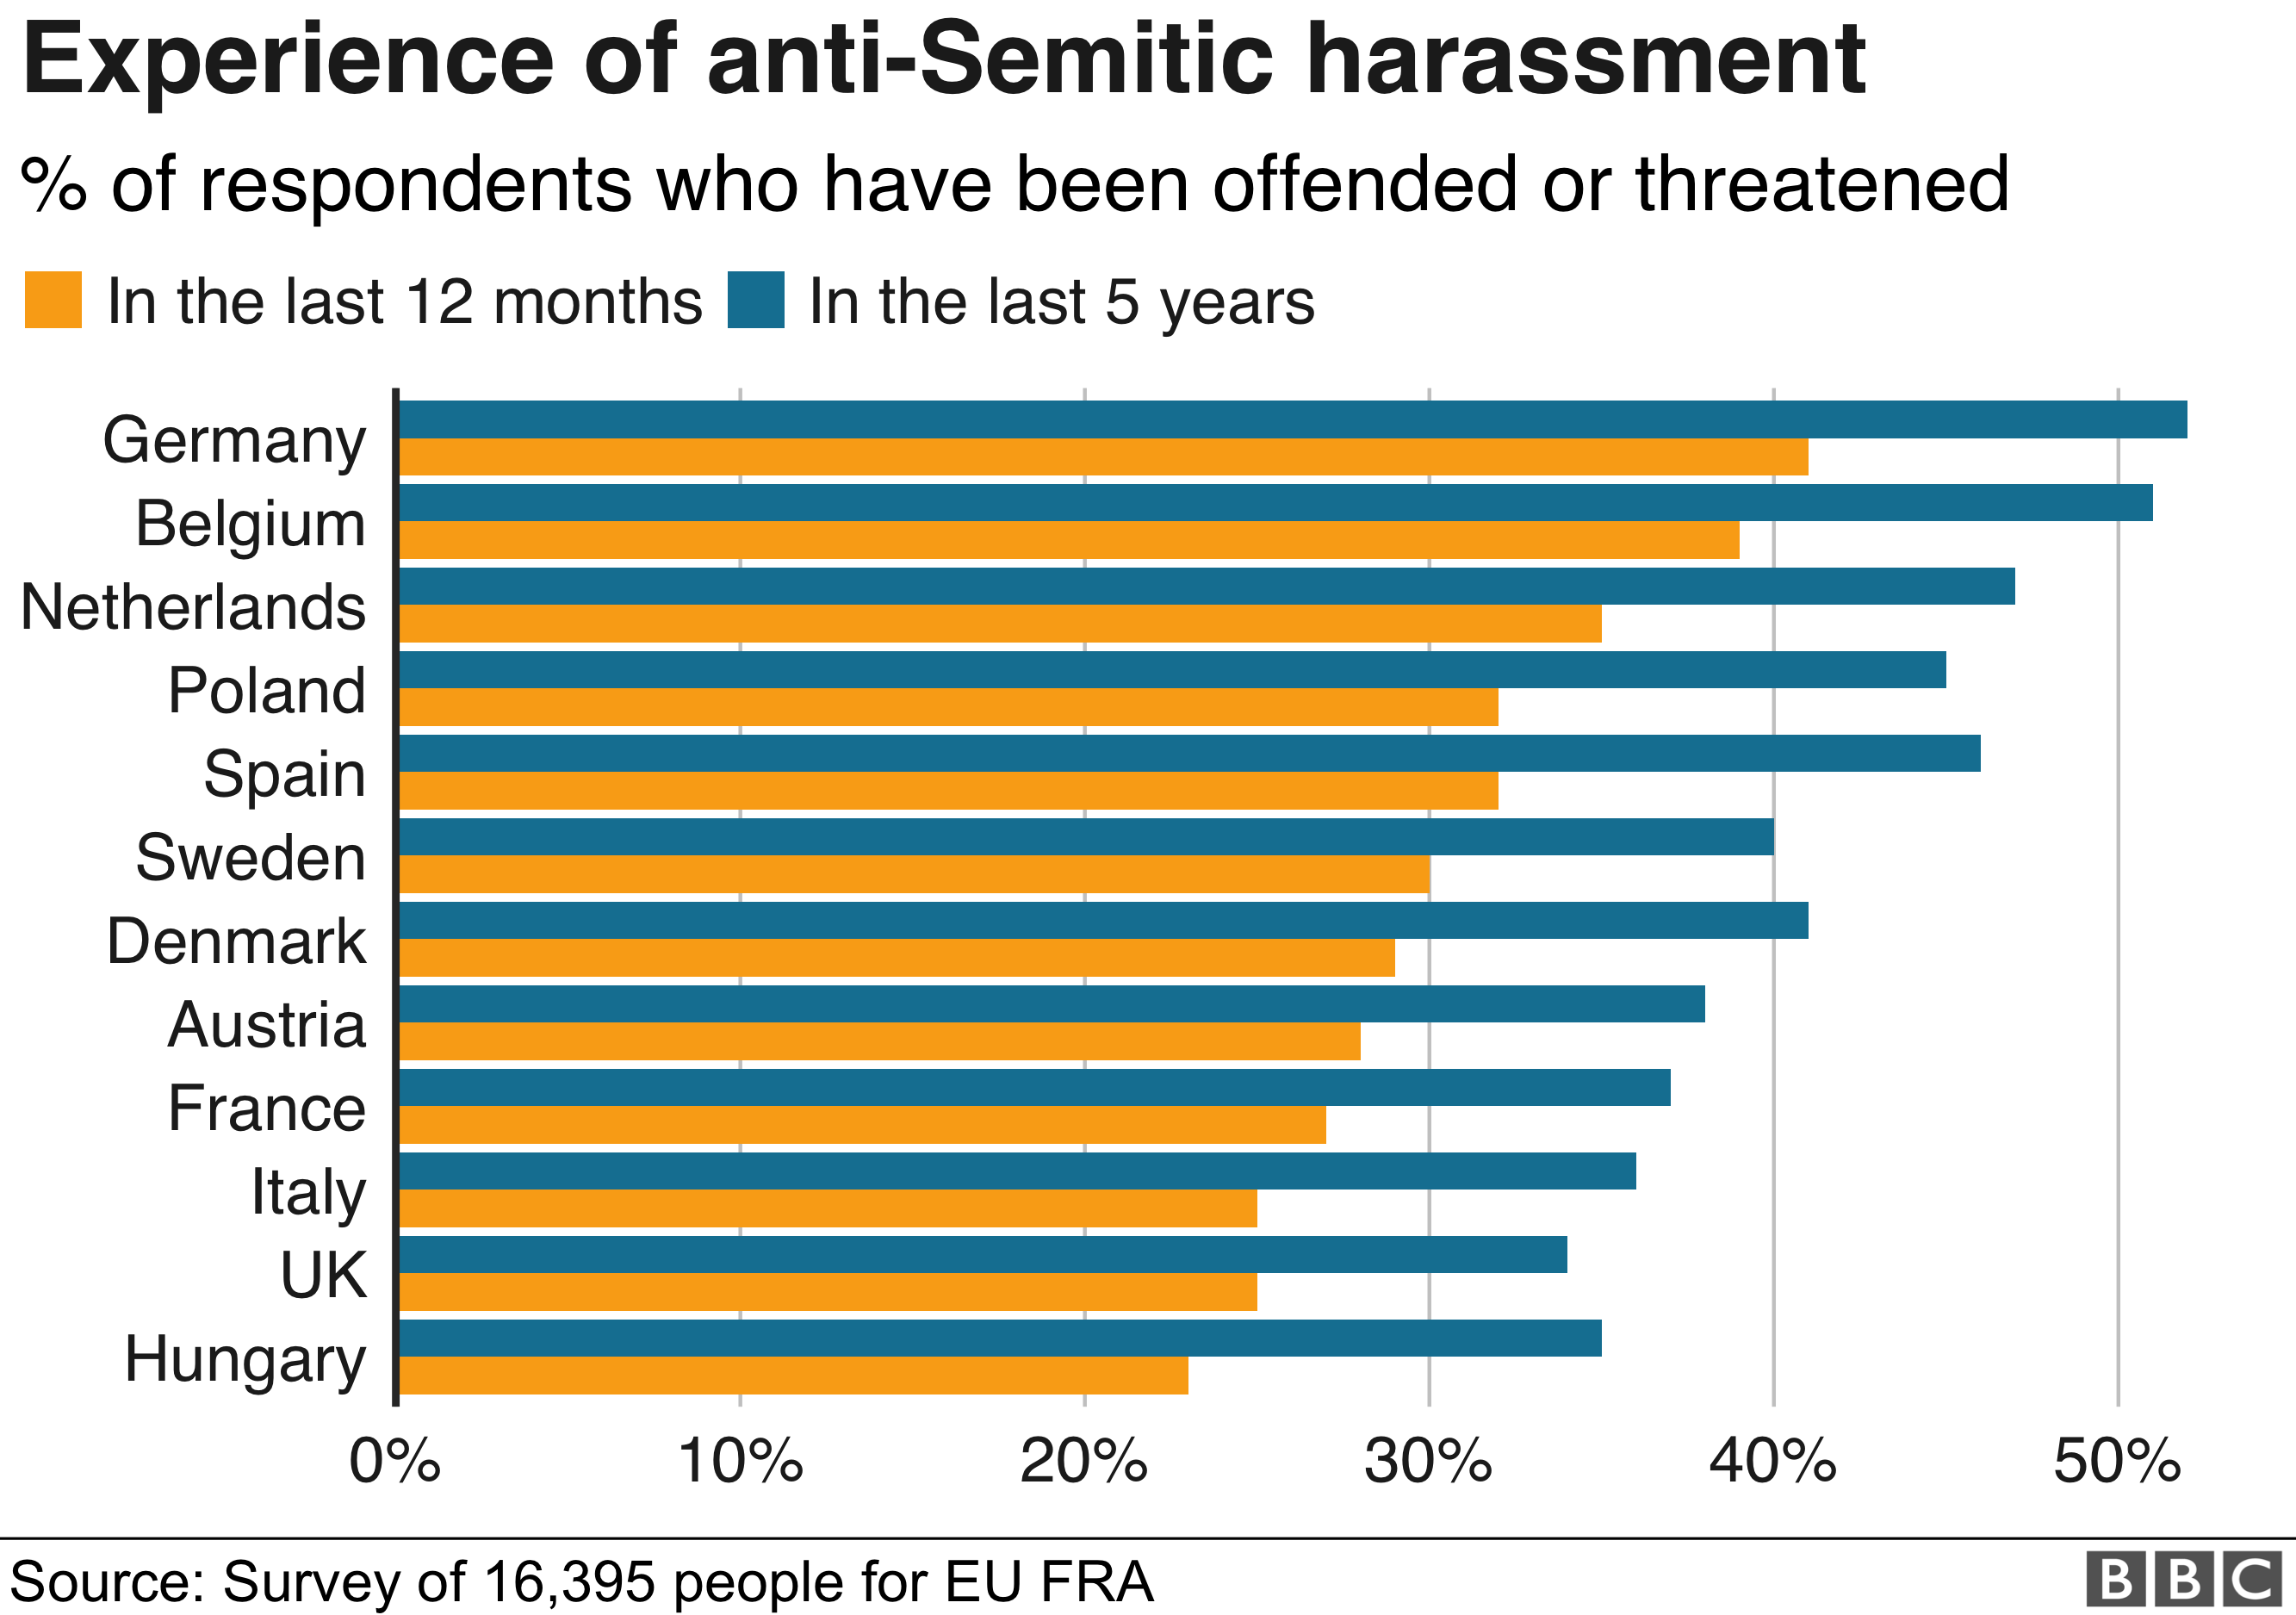 Experience of anti-Semitic harassment graphic